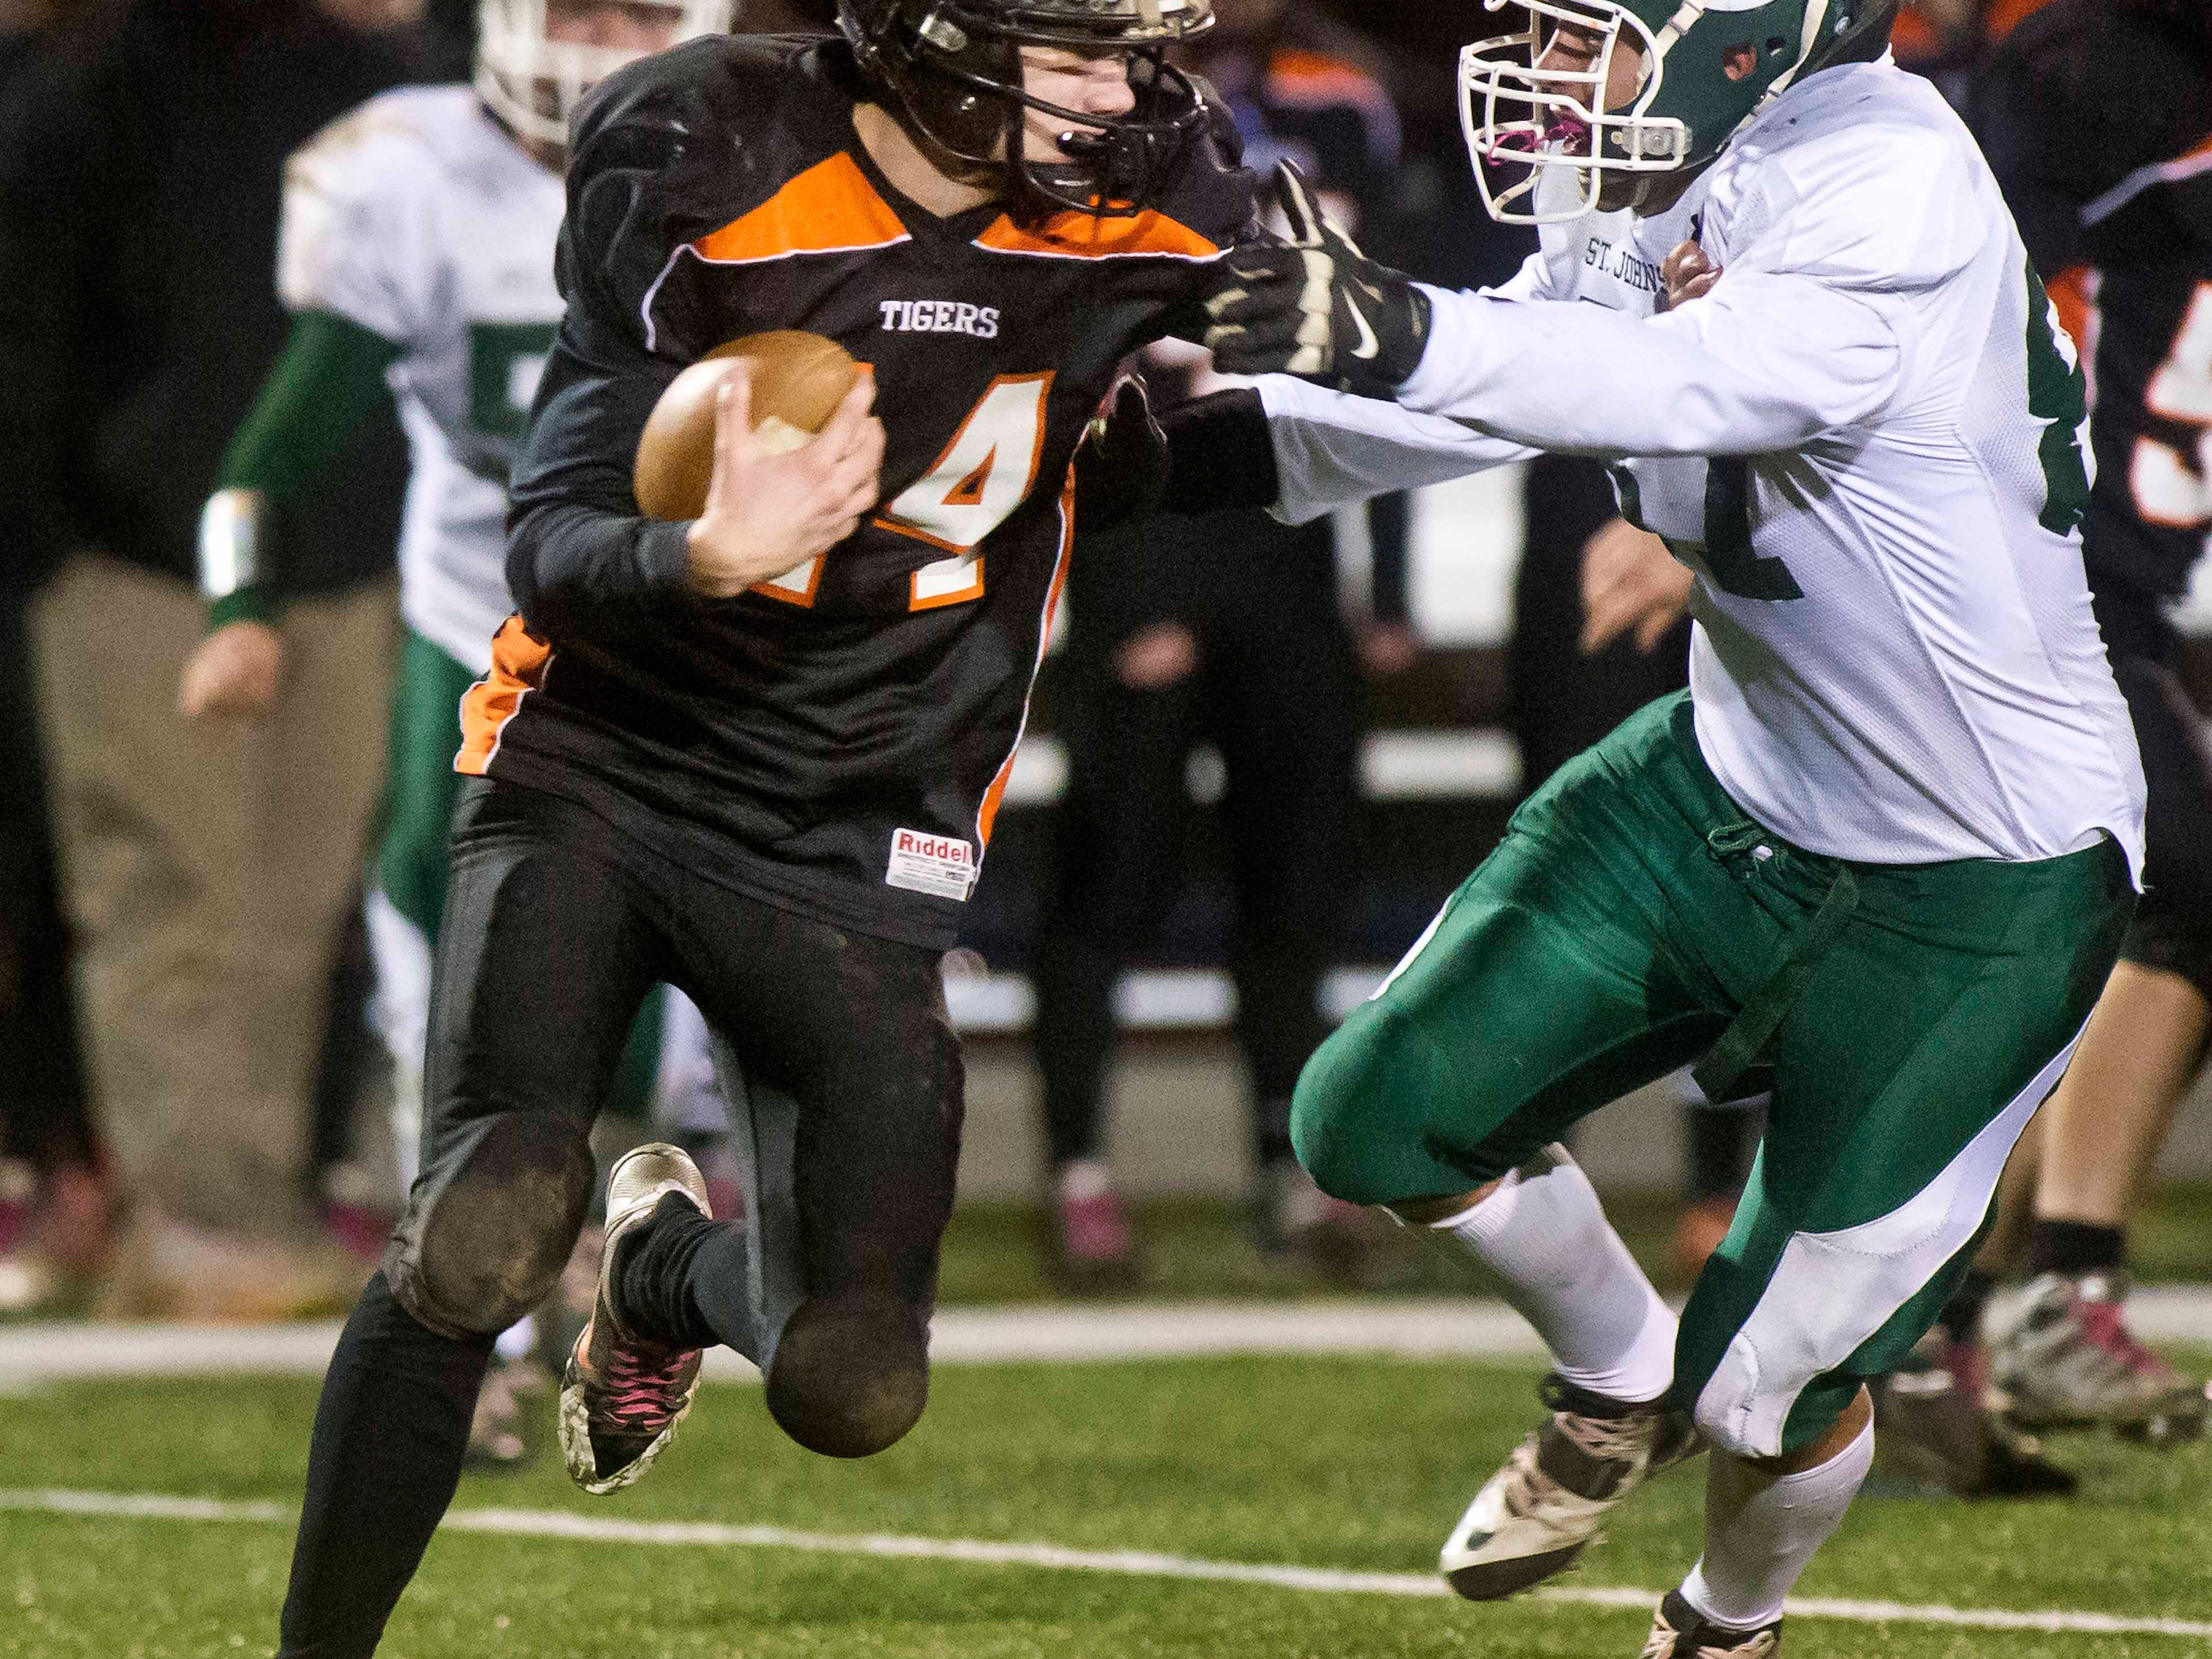 Middlebury's Austin Robinson, left, is pursued by St. Johnsbury's Carlos Carrasco in the Division I football championship game in Rutland on Nov. 8.